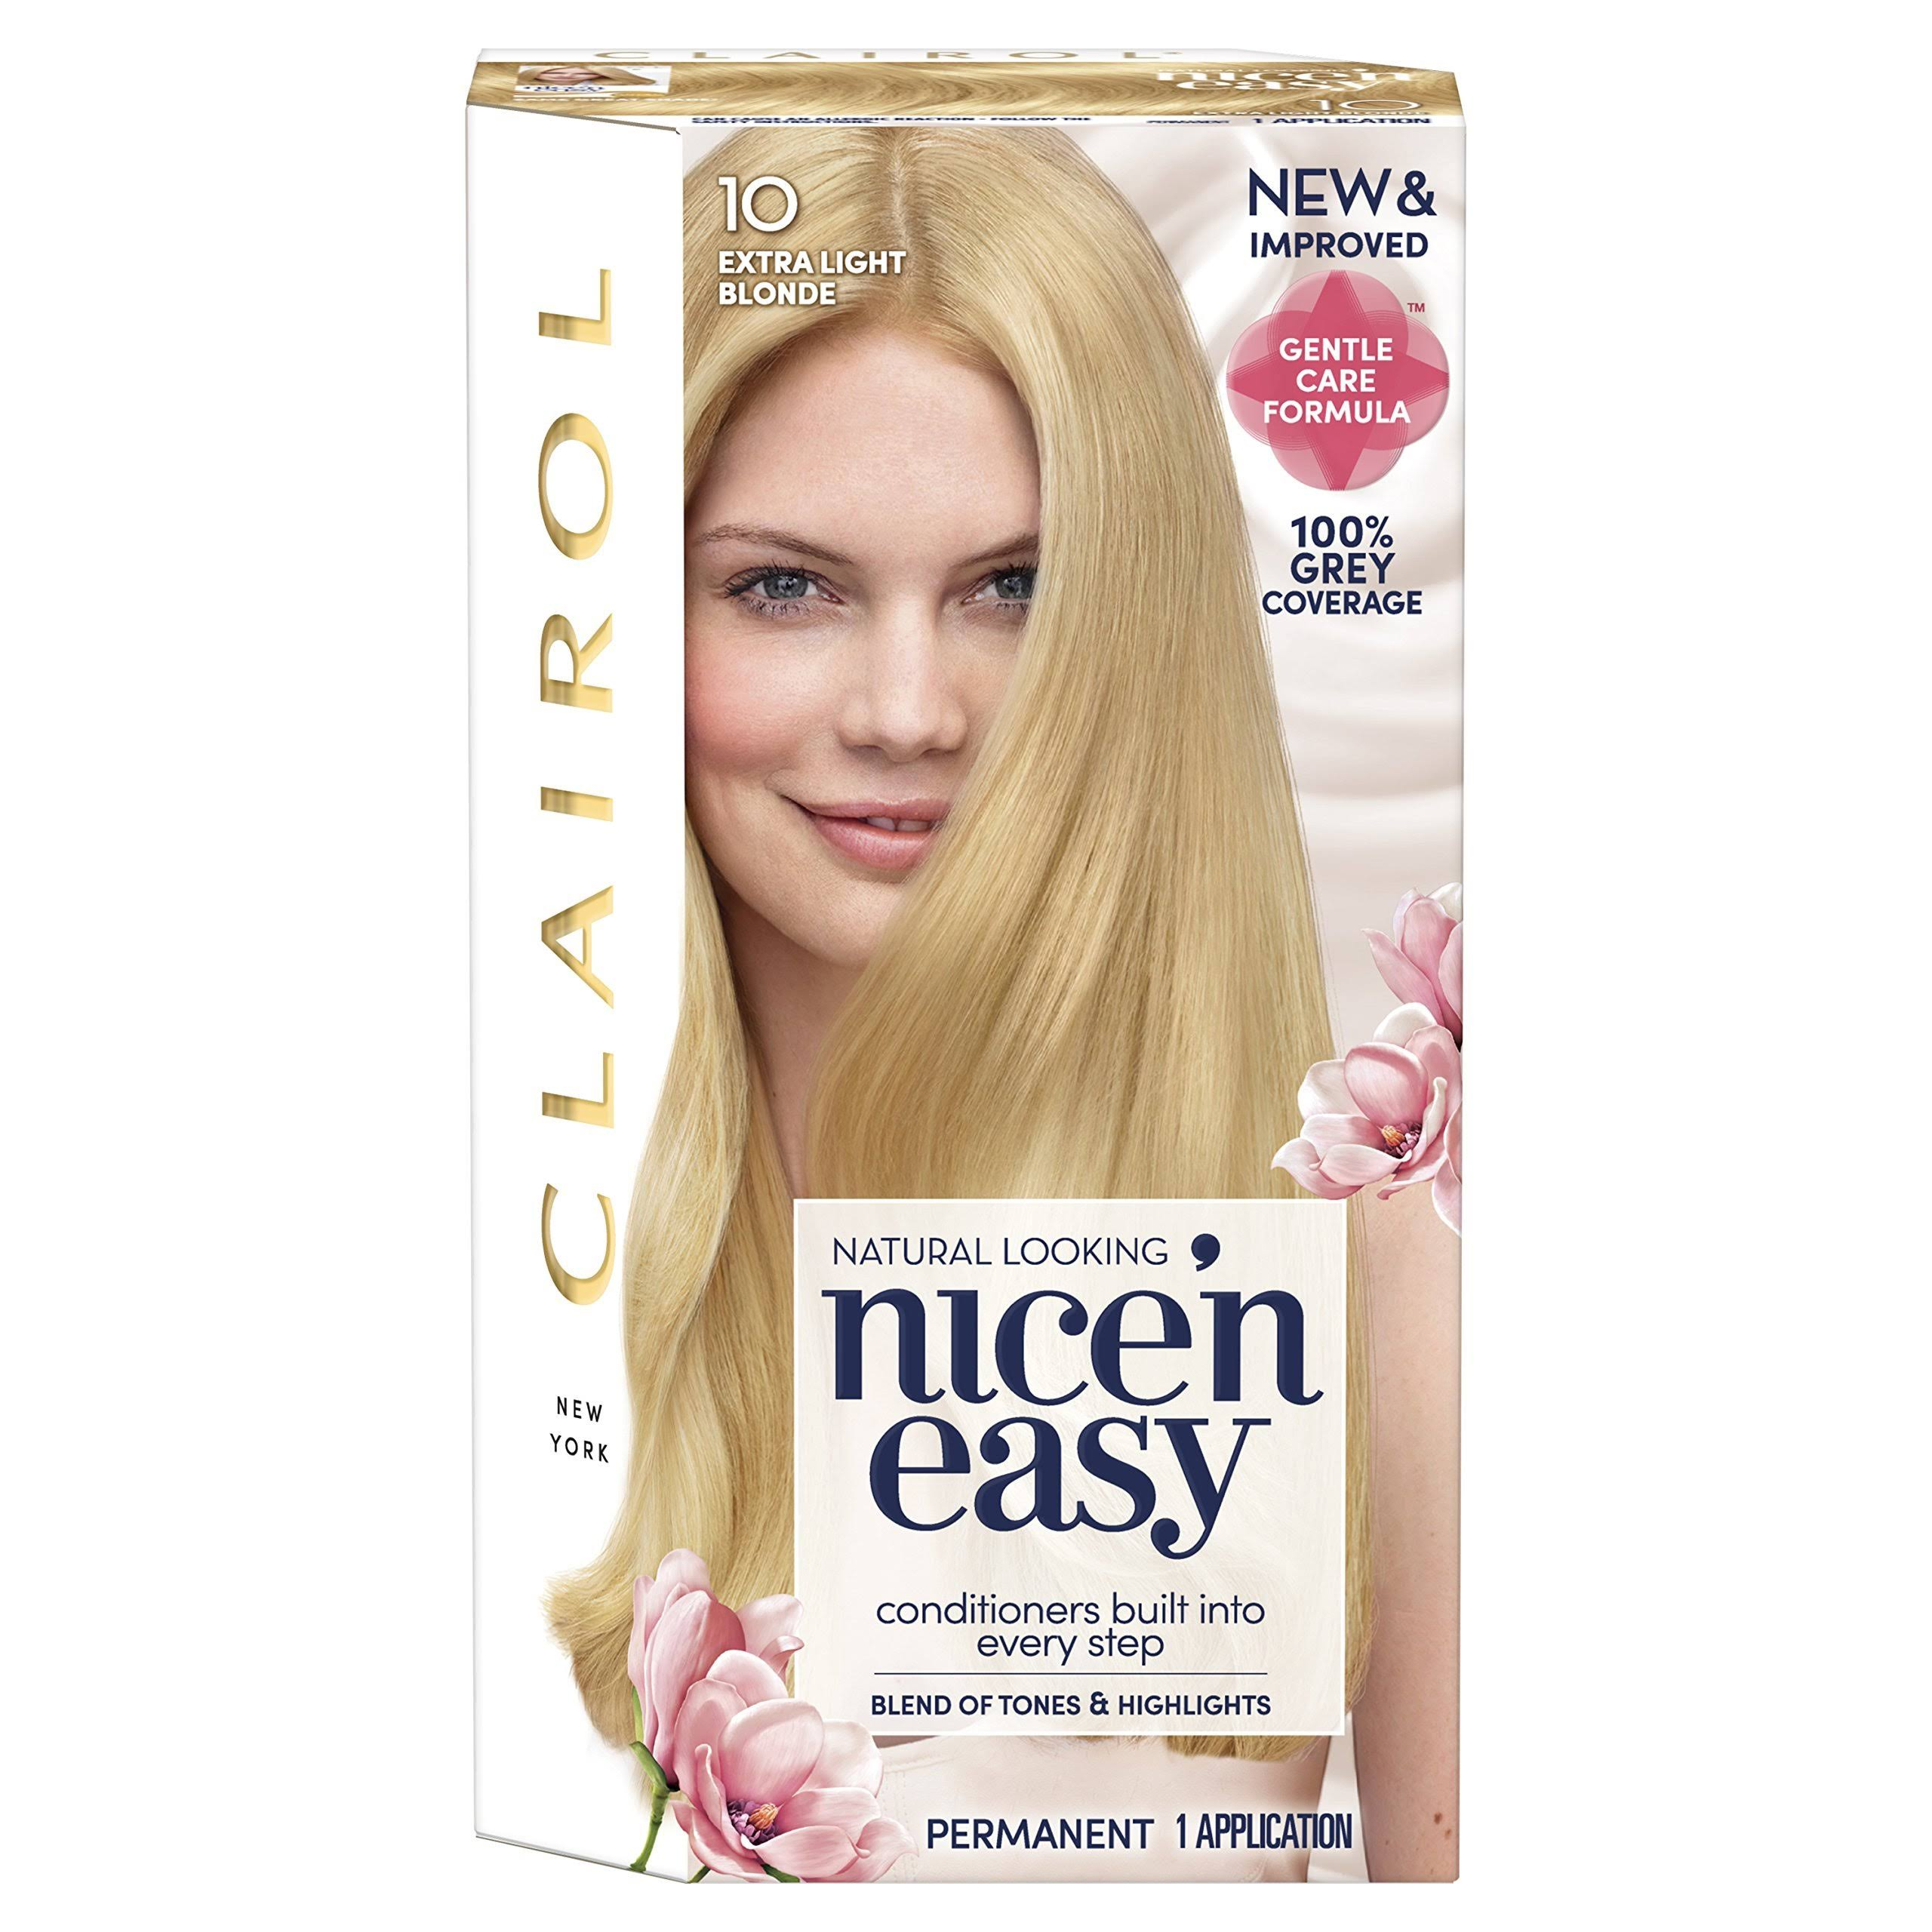 Nice'n Easy Permanent Hair Dye - 10 Extra Light Blonde